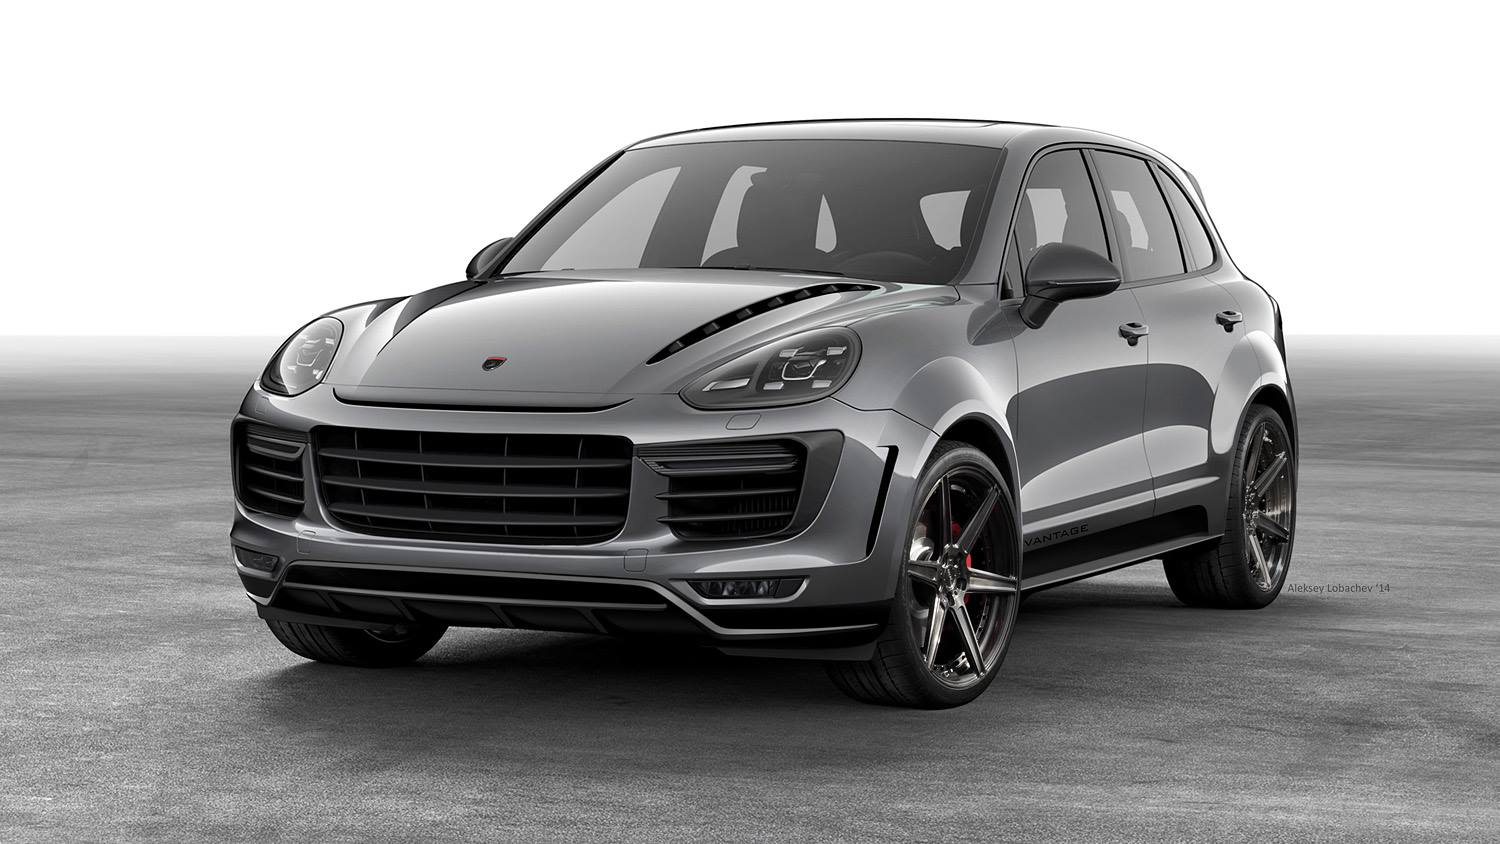 topcar updates porsche cayenne vantage 2015 gtspirit. Black Bedroom Furniture Sets. Home Design Ideas